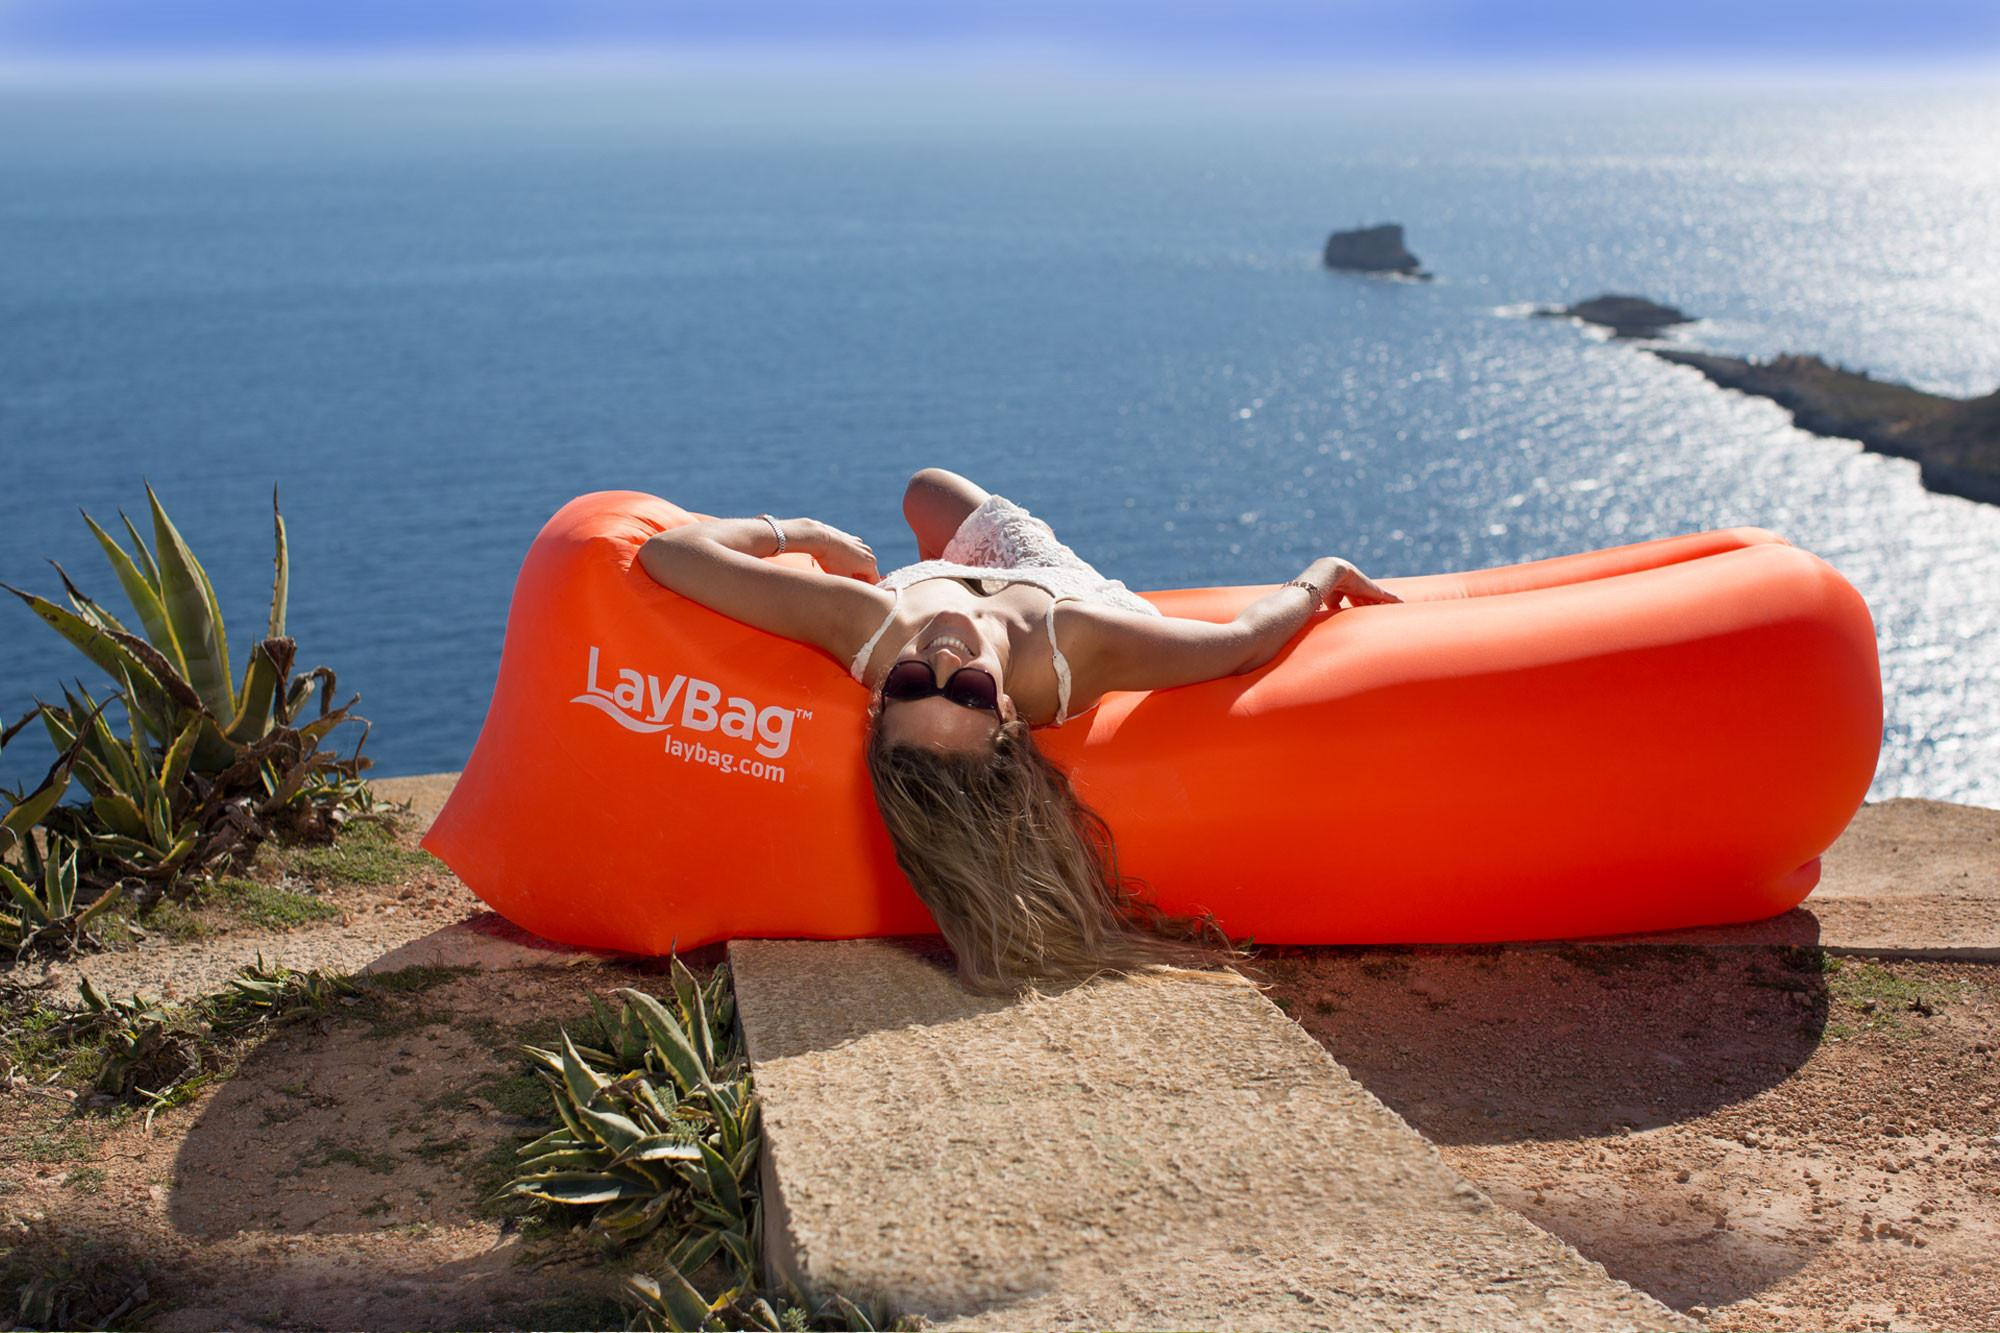 Laybag Inflatable Outdoor Lounge Chair